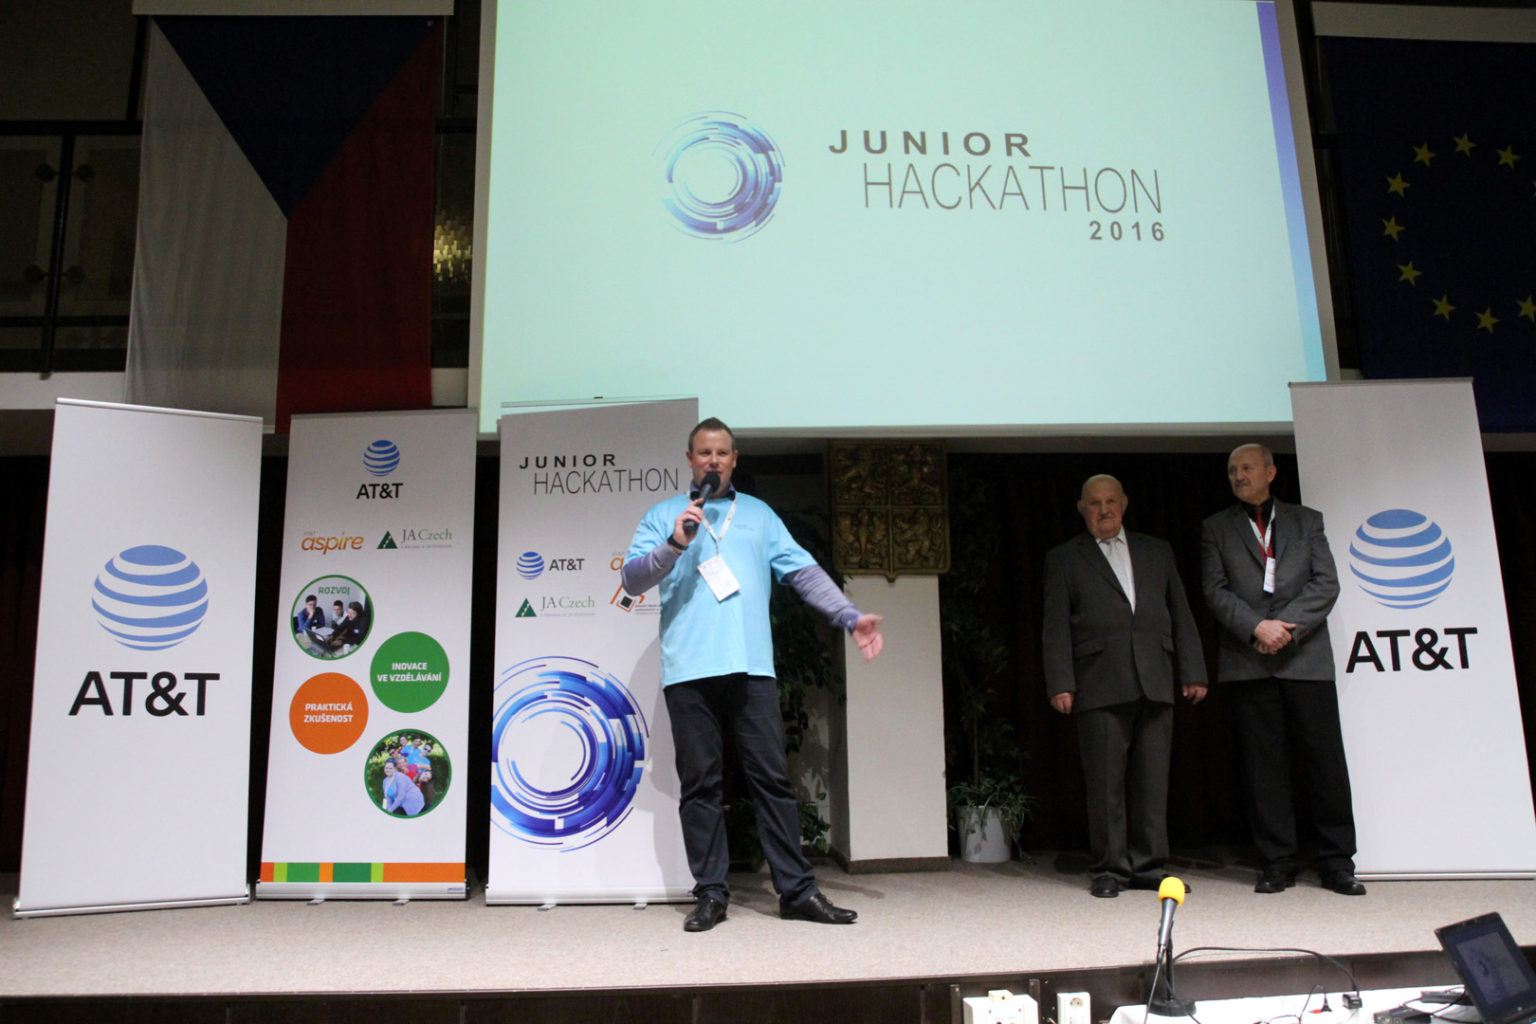 Junior Hackathon Brno 2016. Ladislav Venc, AT&T Czech Republic Country Manager.